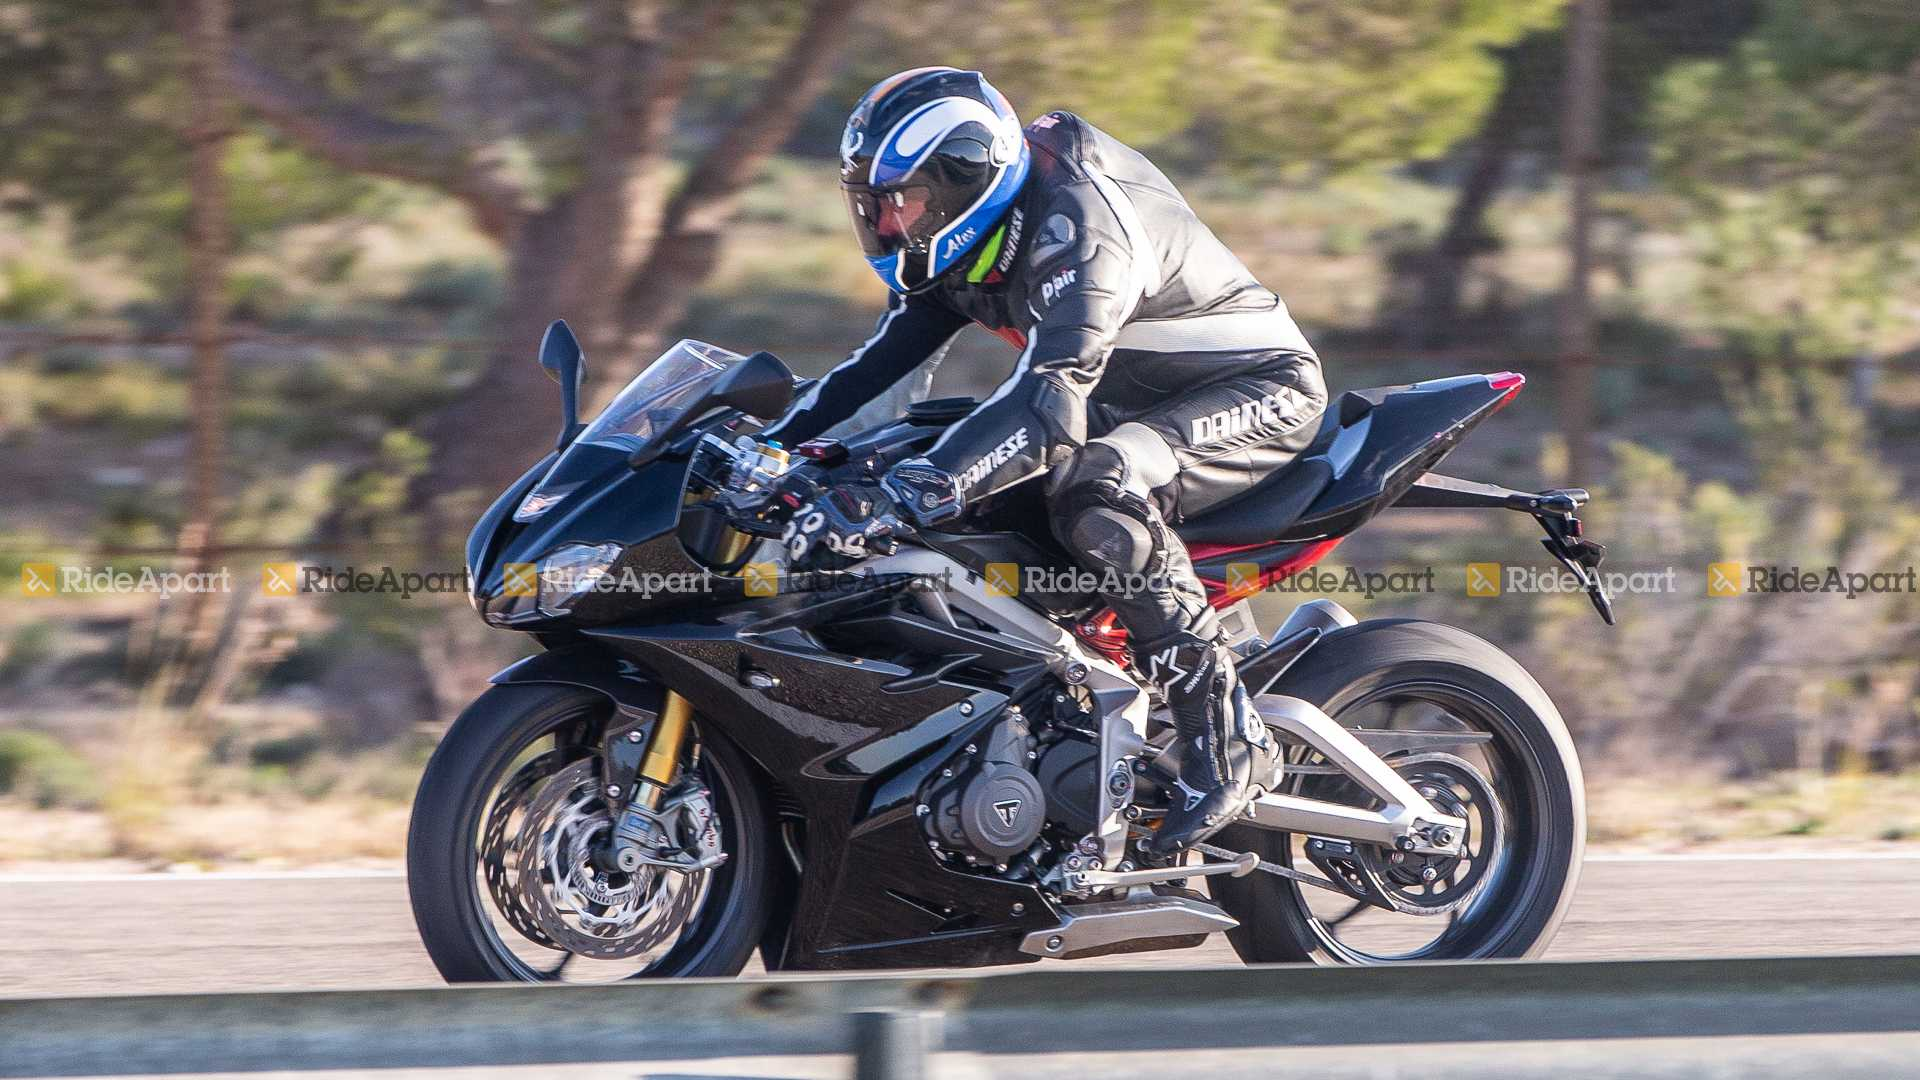 Spotted New Triumph Daytona 765 Undergoes Testing In Spain